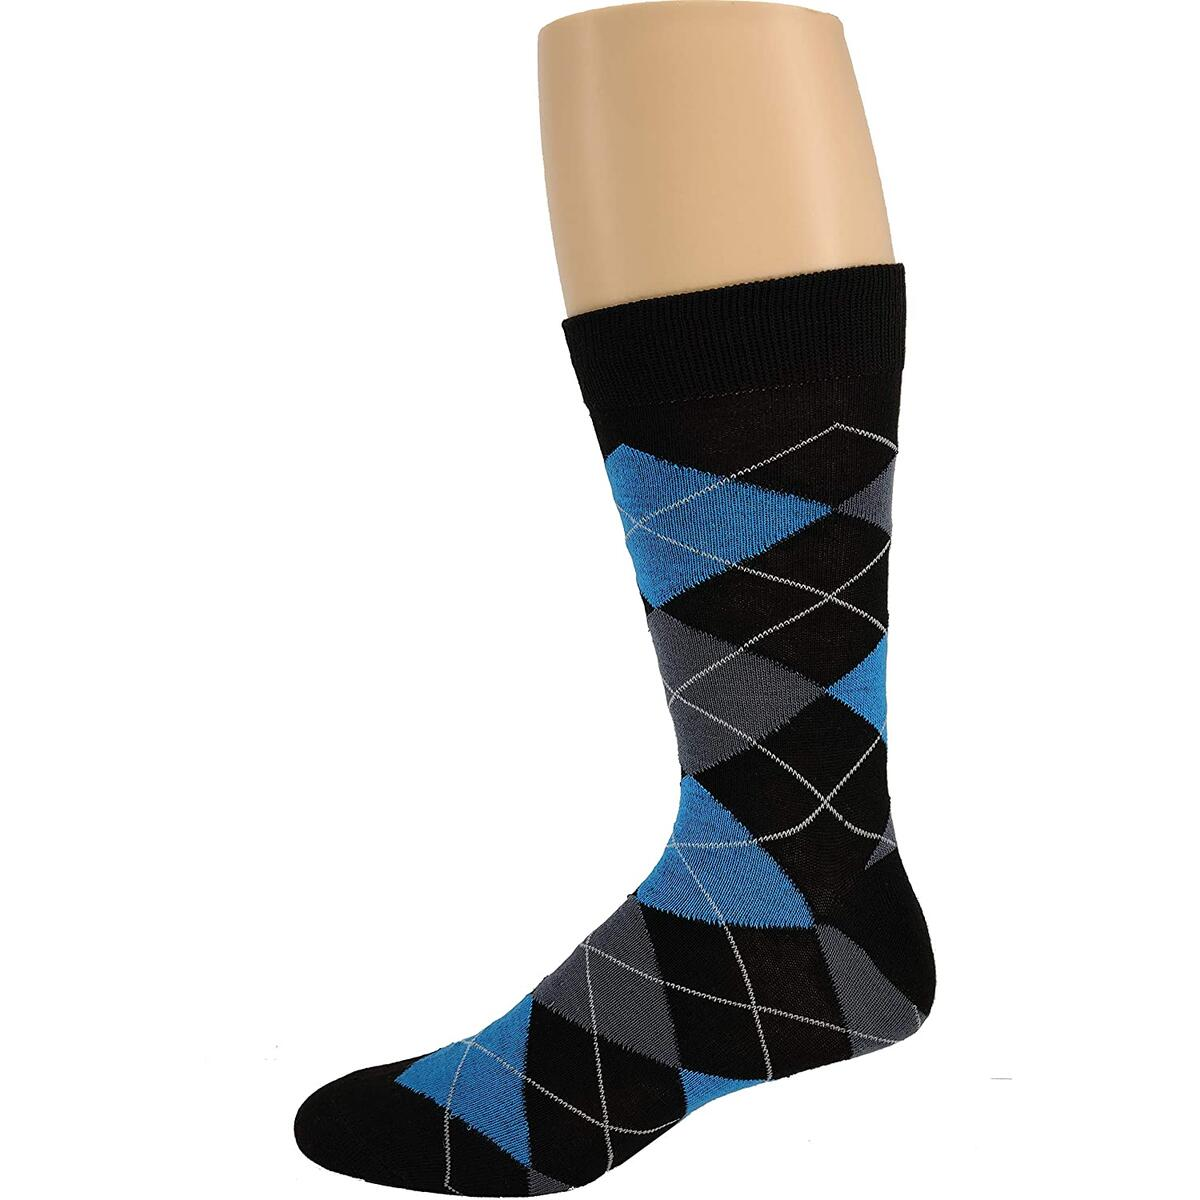 Debra Weitzner Mens Dress Socks Cotton Colorful MULTI STRIPED PATTERN ONLY 6 Pairs With Gift Box F